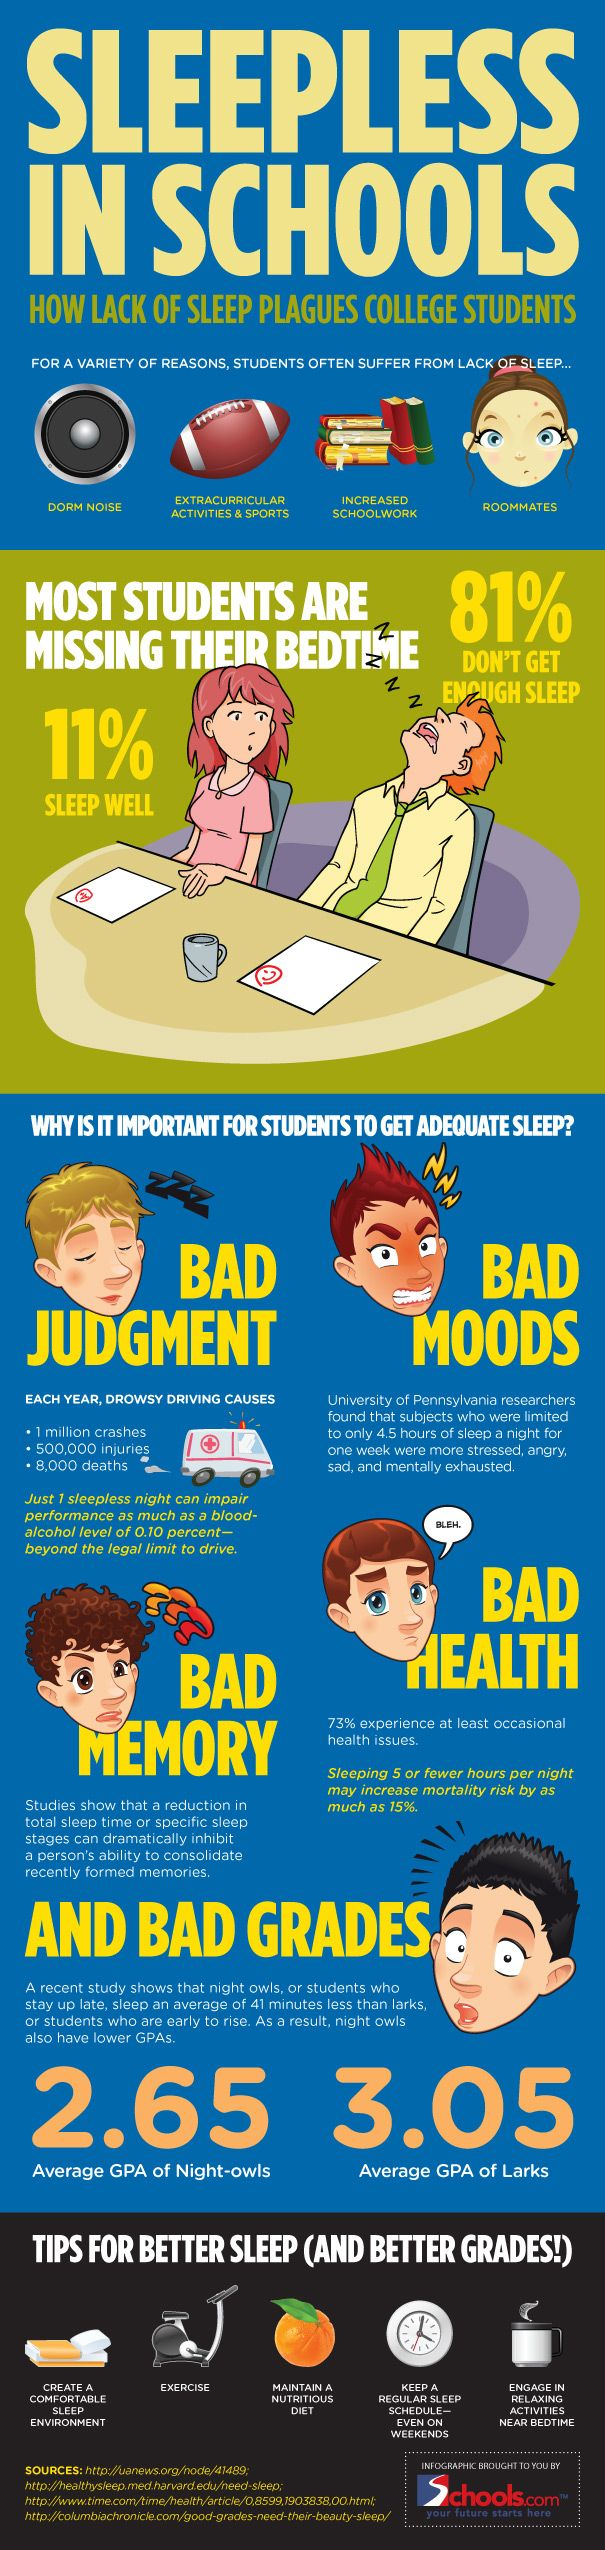 Student sleep : Sleep deprivation among college students  See also: http://www.fit.edu/caps/documents/SleepandCollegeLife.pdf